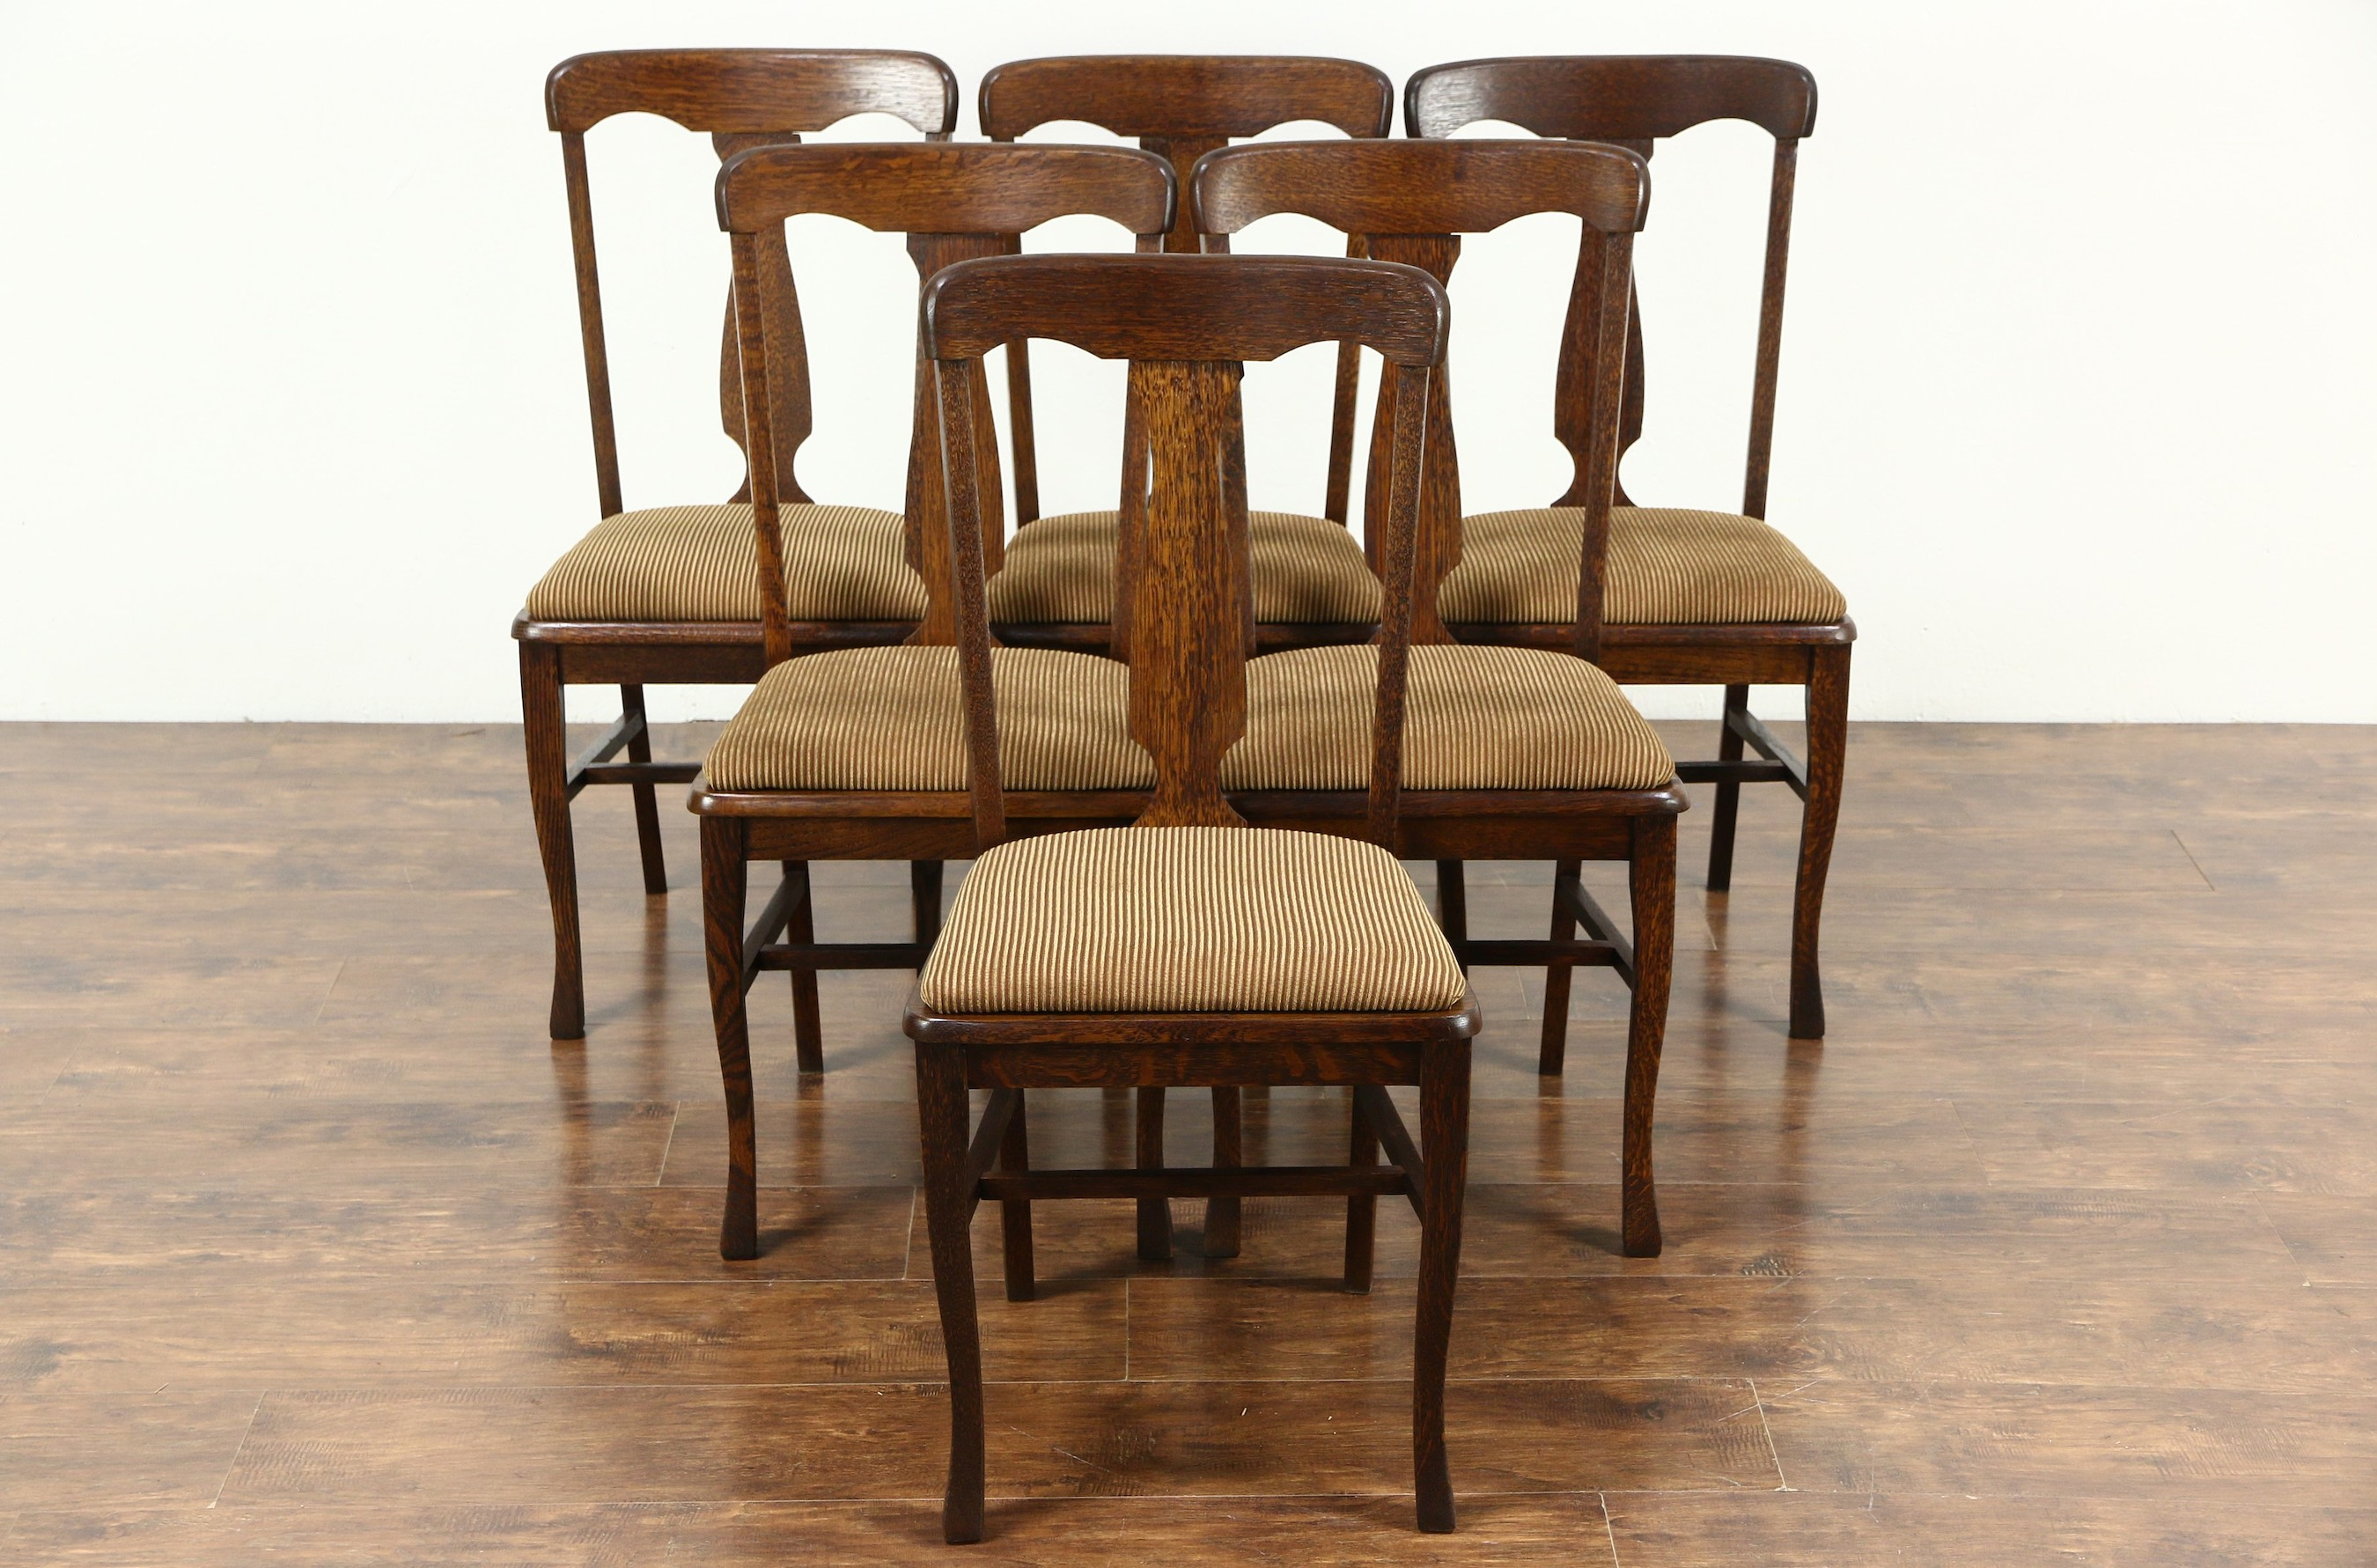 SOLD - Set of 6 Antique 1900 Quarter Sawn Oak Dining Chairs, New Upholstery  - Harp Gallery